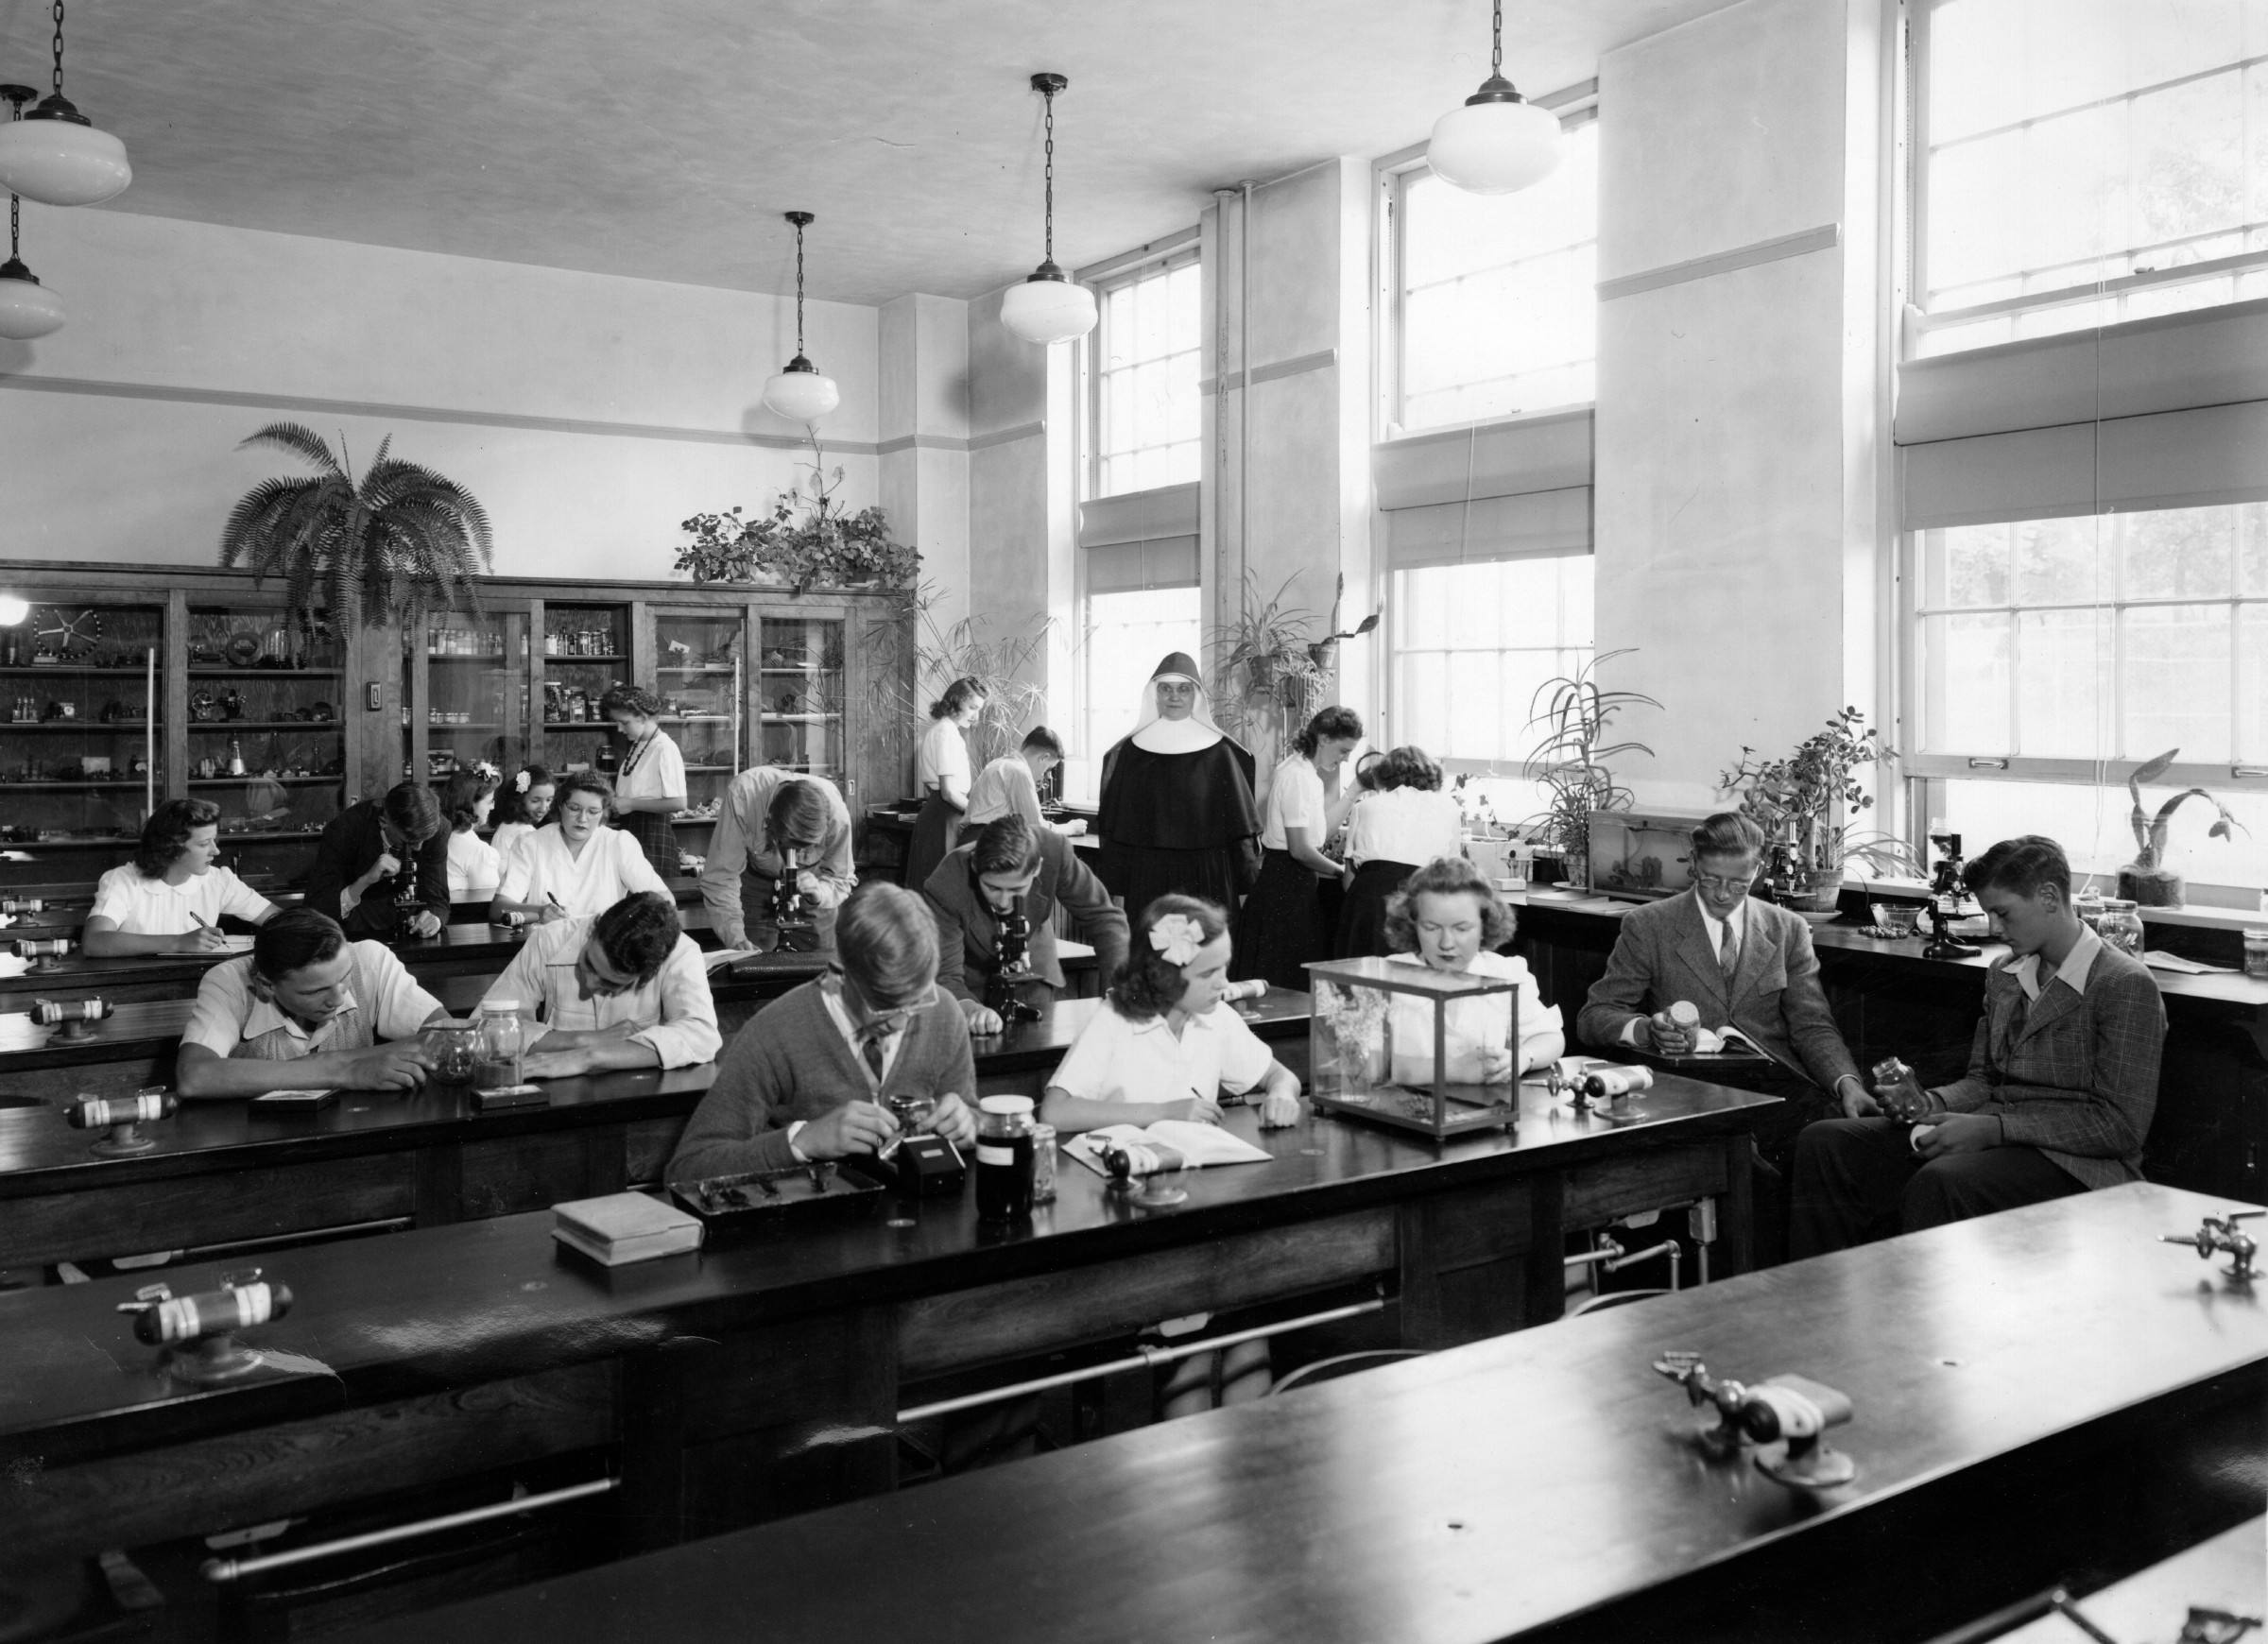 Science class at St. Mary's Springs Academy, 1940s.